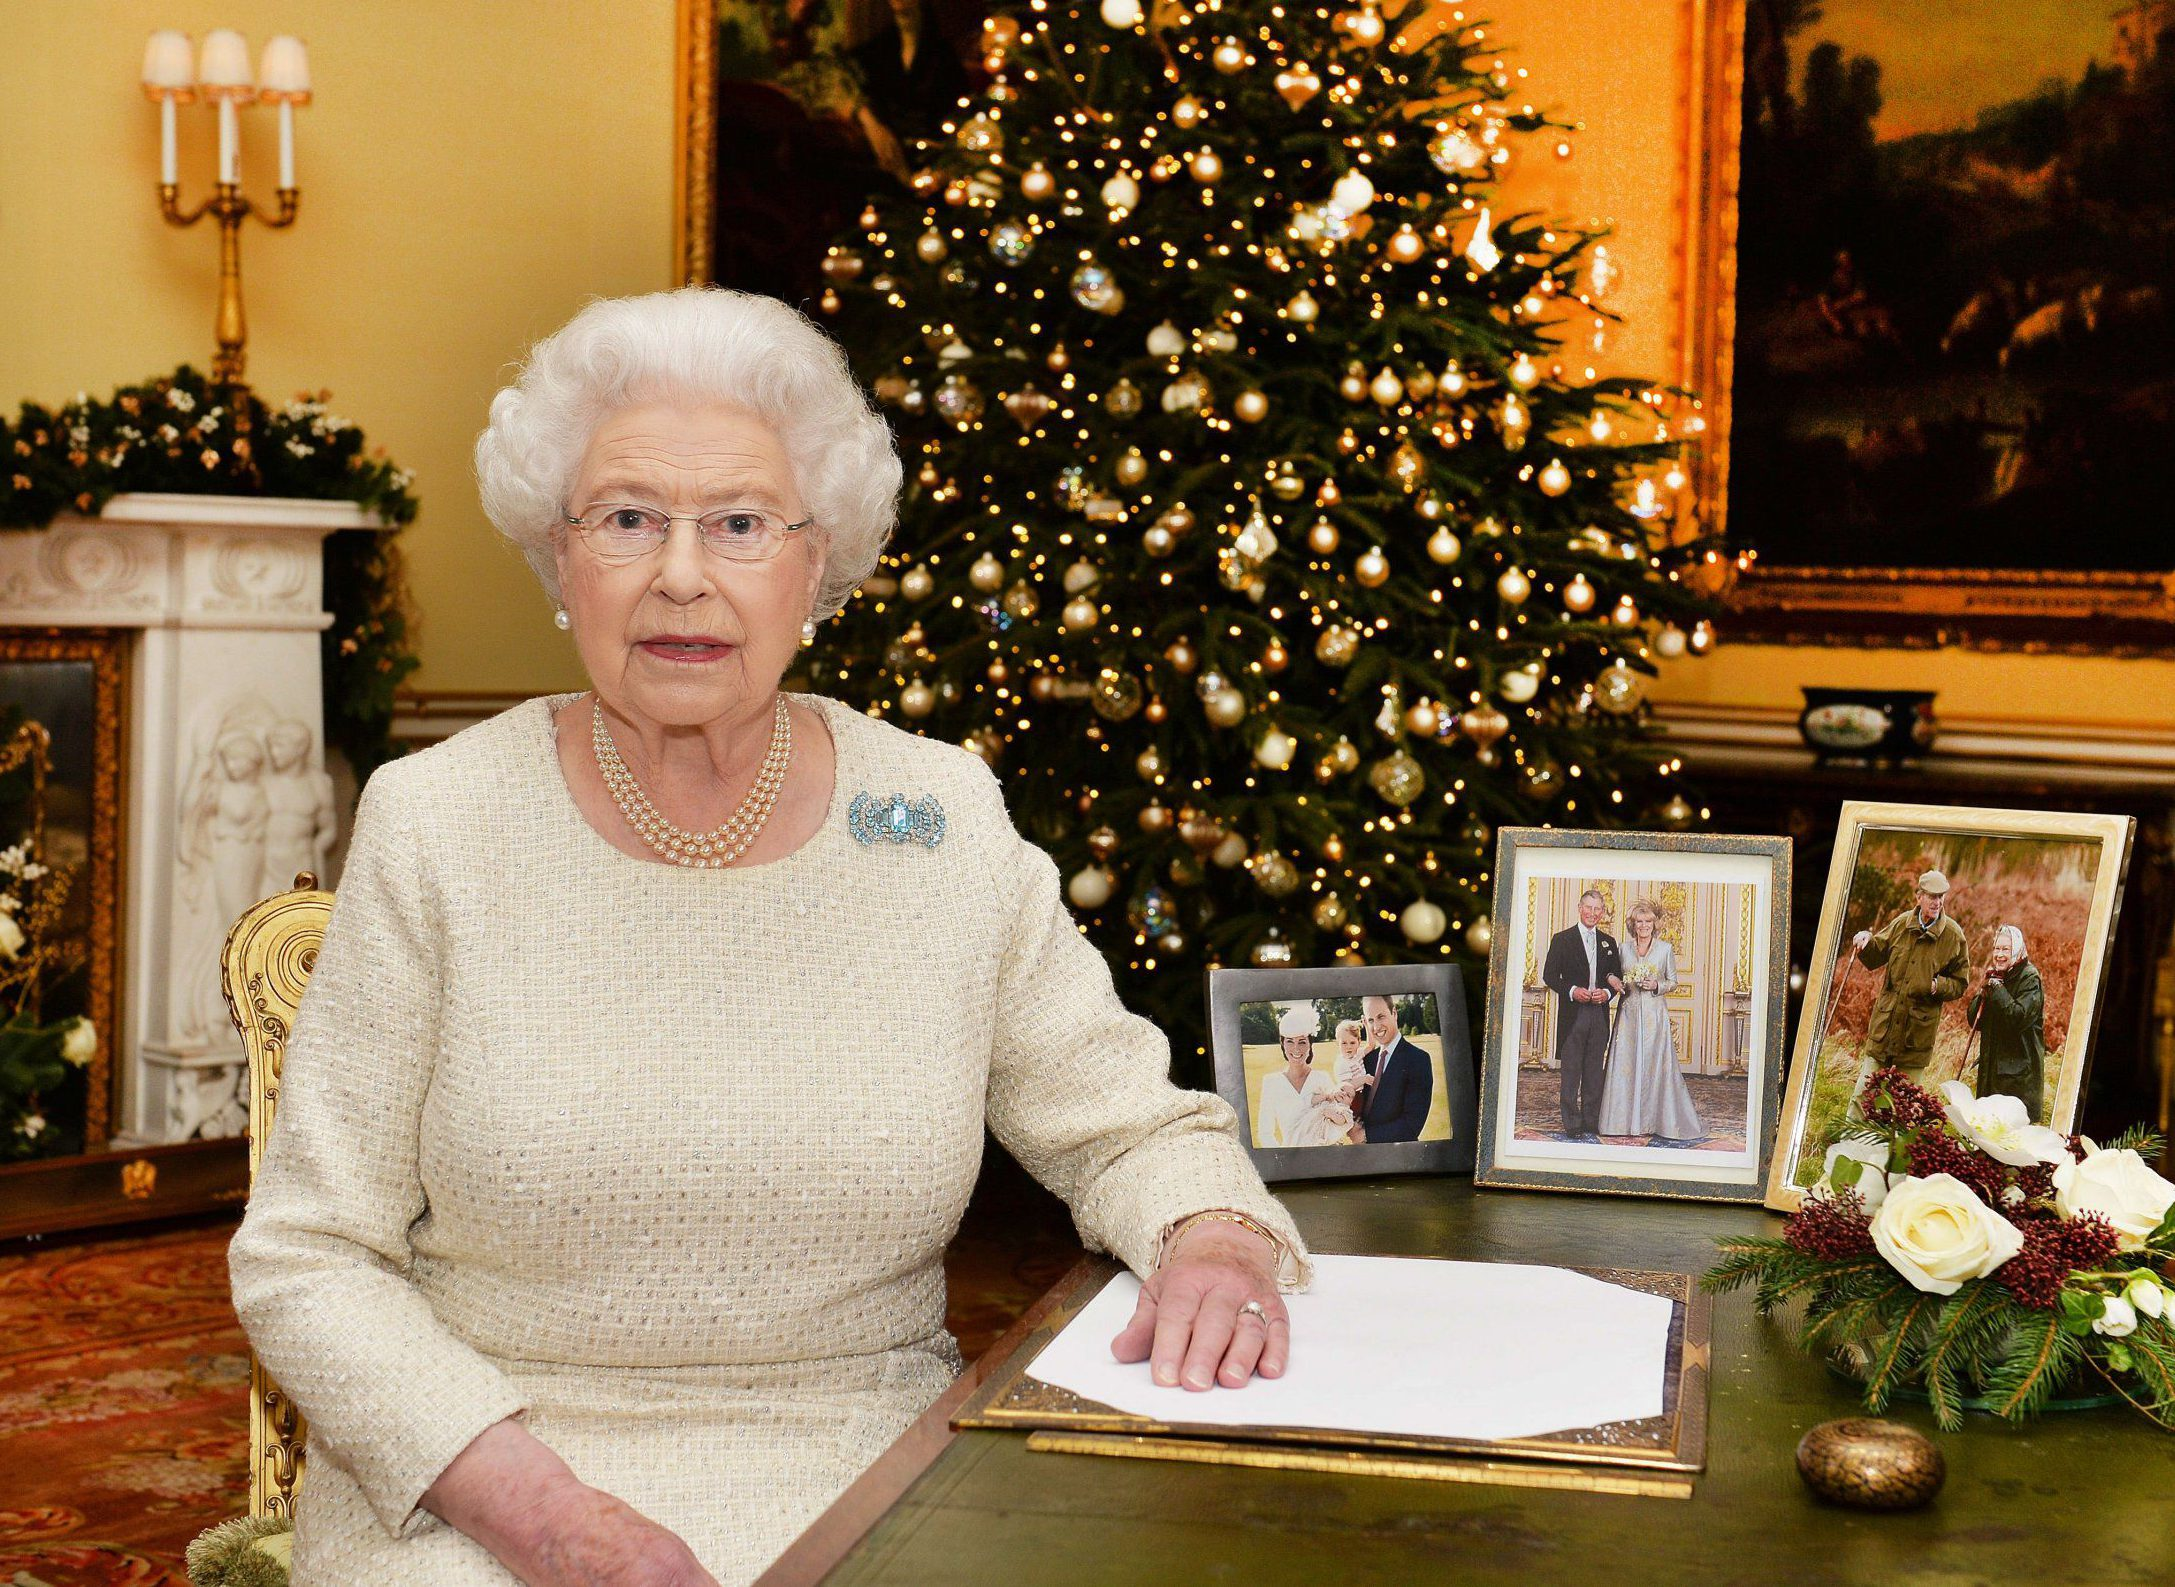 Mandatory Credit: Photo by REX/Shutterstock (5502383a)nQueen Elizabeth IInQueen Elizabeth II Christmas Broadcast, Buckingham Palace, London, Britain - 25 Dec 2015nQueen Elizabeth II sits at a desk in the 18th Century Room at Buckingham Palace, London, after recording her Christmas Day broadcast to the Commonwealthn